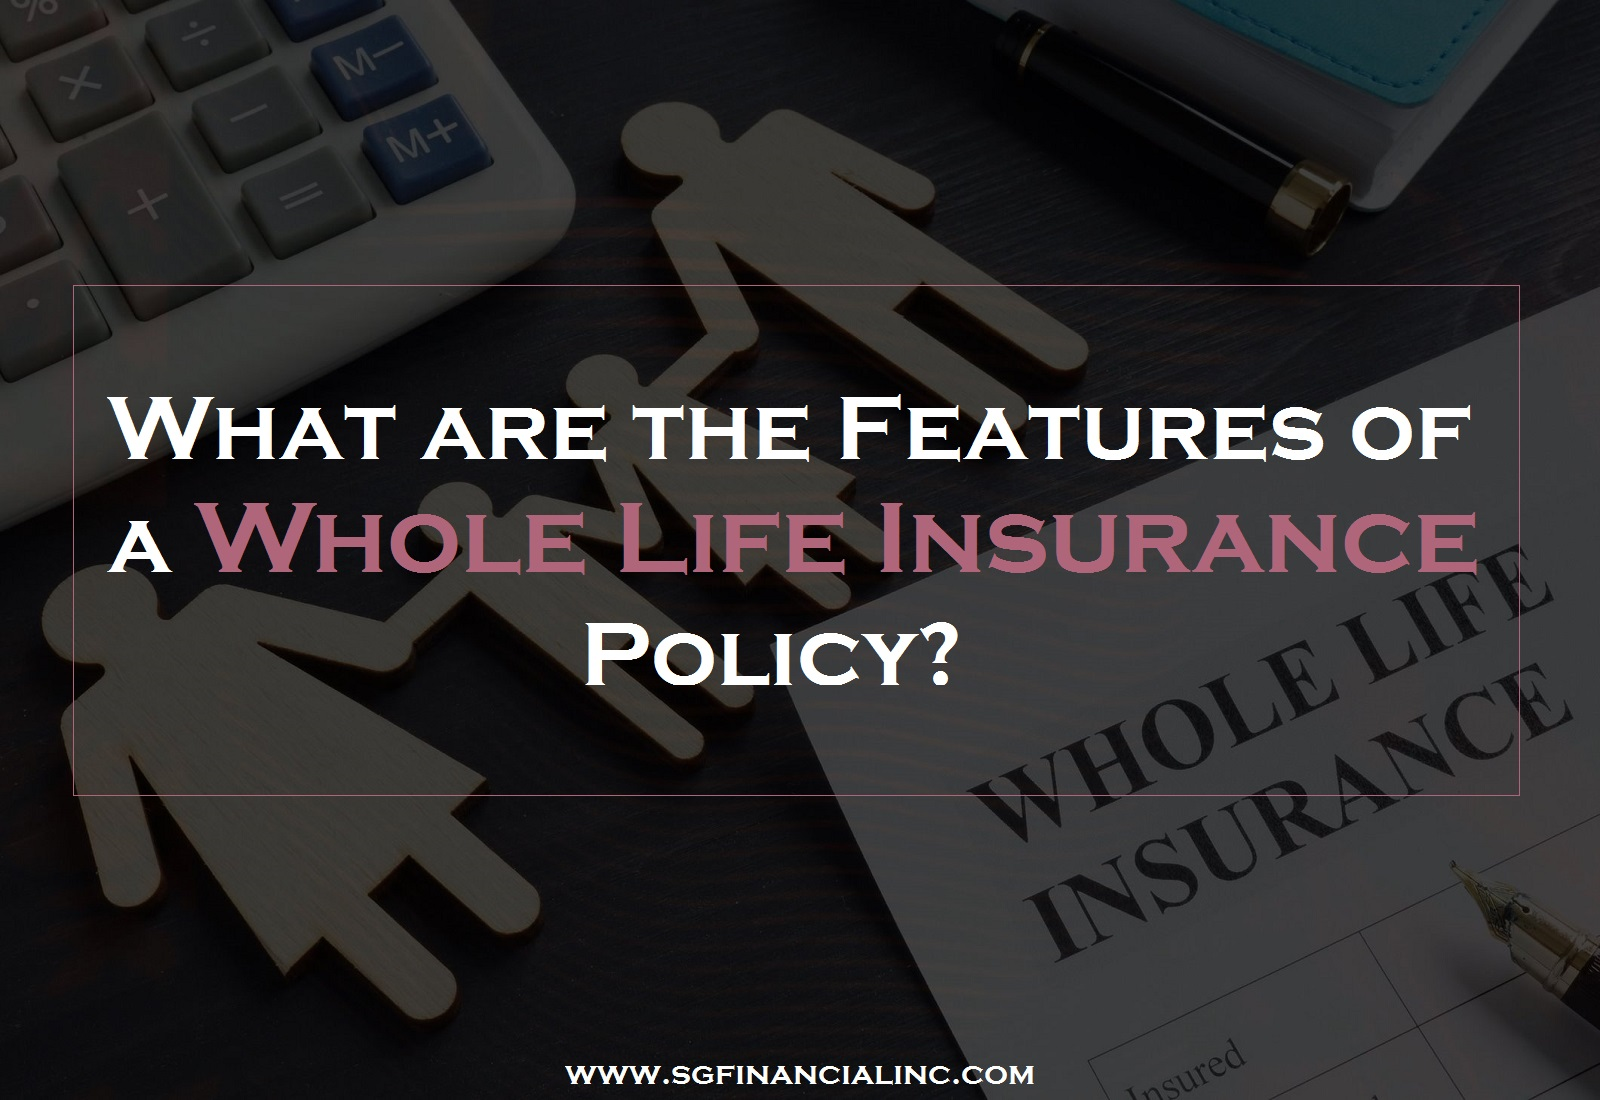 What are the Features of a Whole Life Insurance Policy?